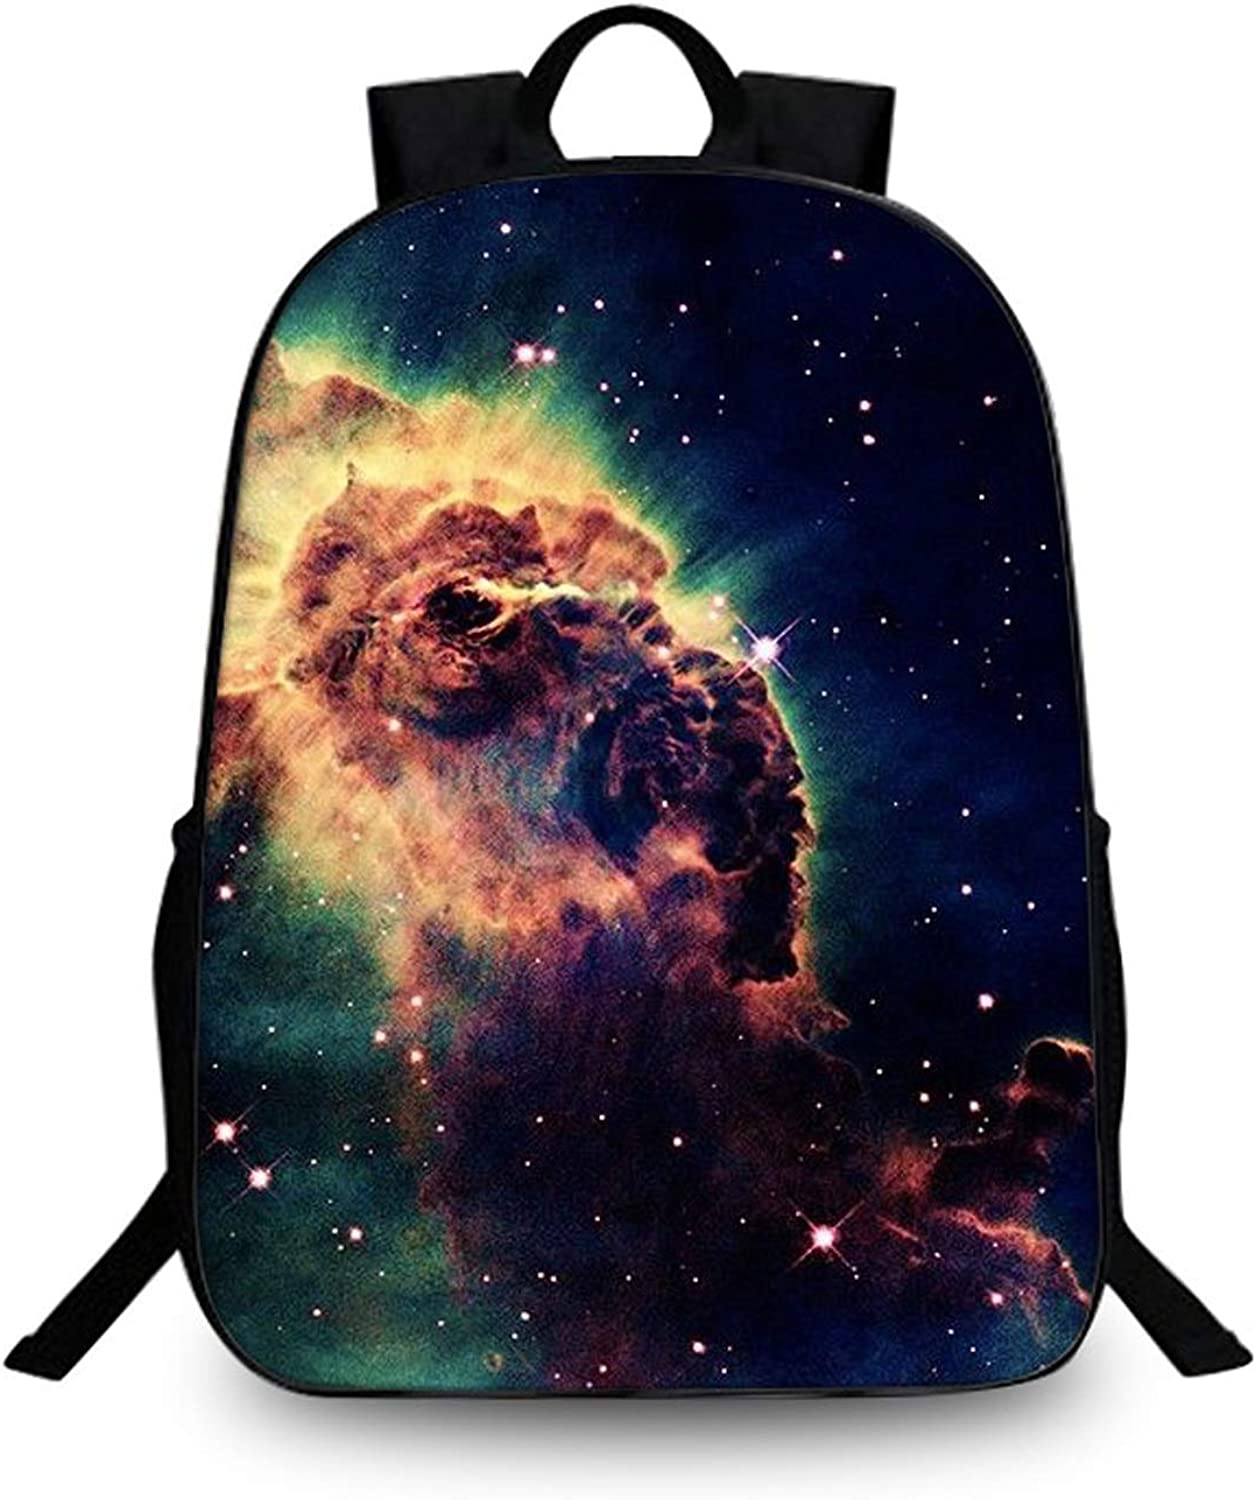 Fashion Print Backpack, Outdoor Sports Hiking Backpack Youth Leisure Riding Ultra Light Backpack Unisex School Bag (color   H)